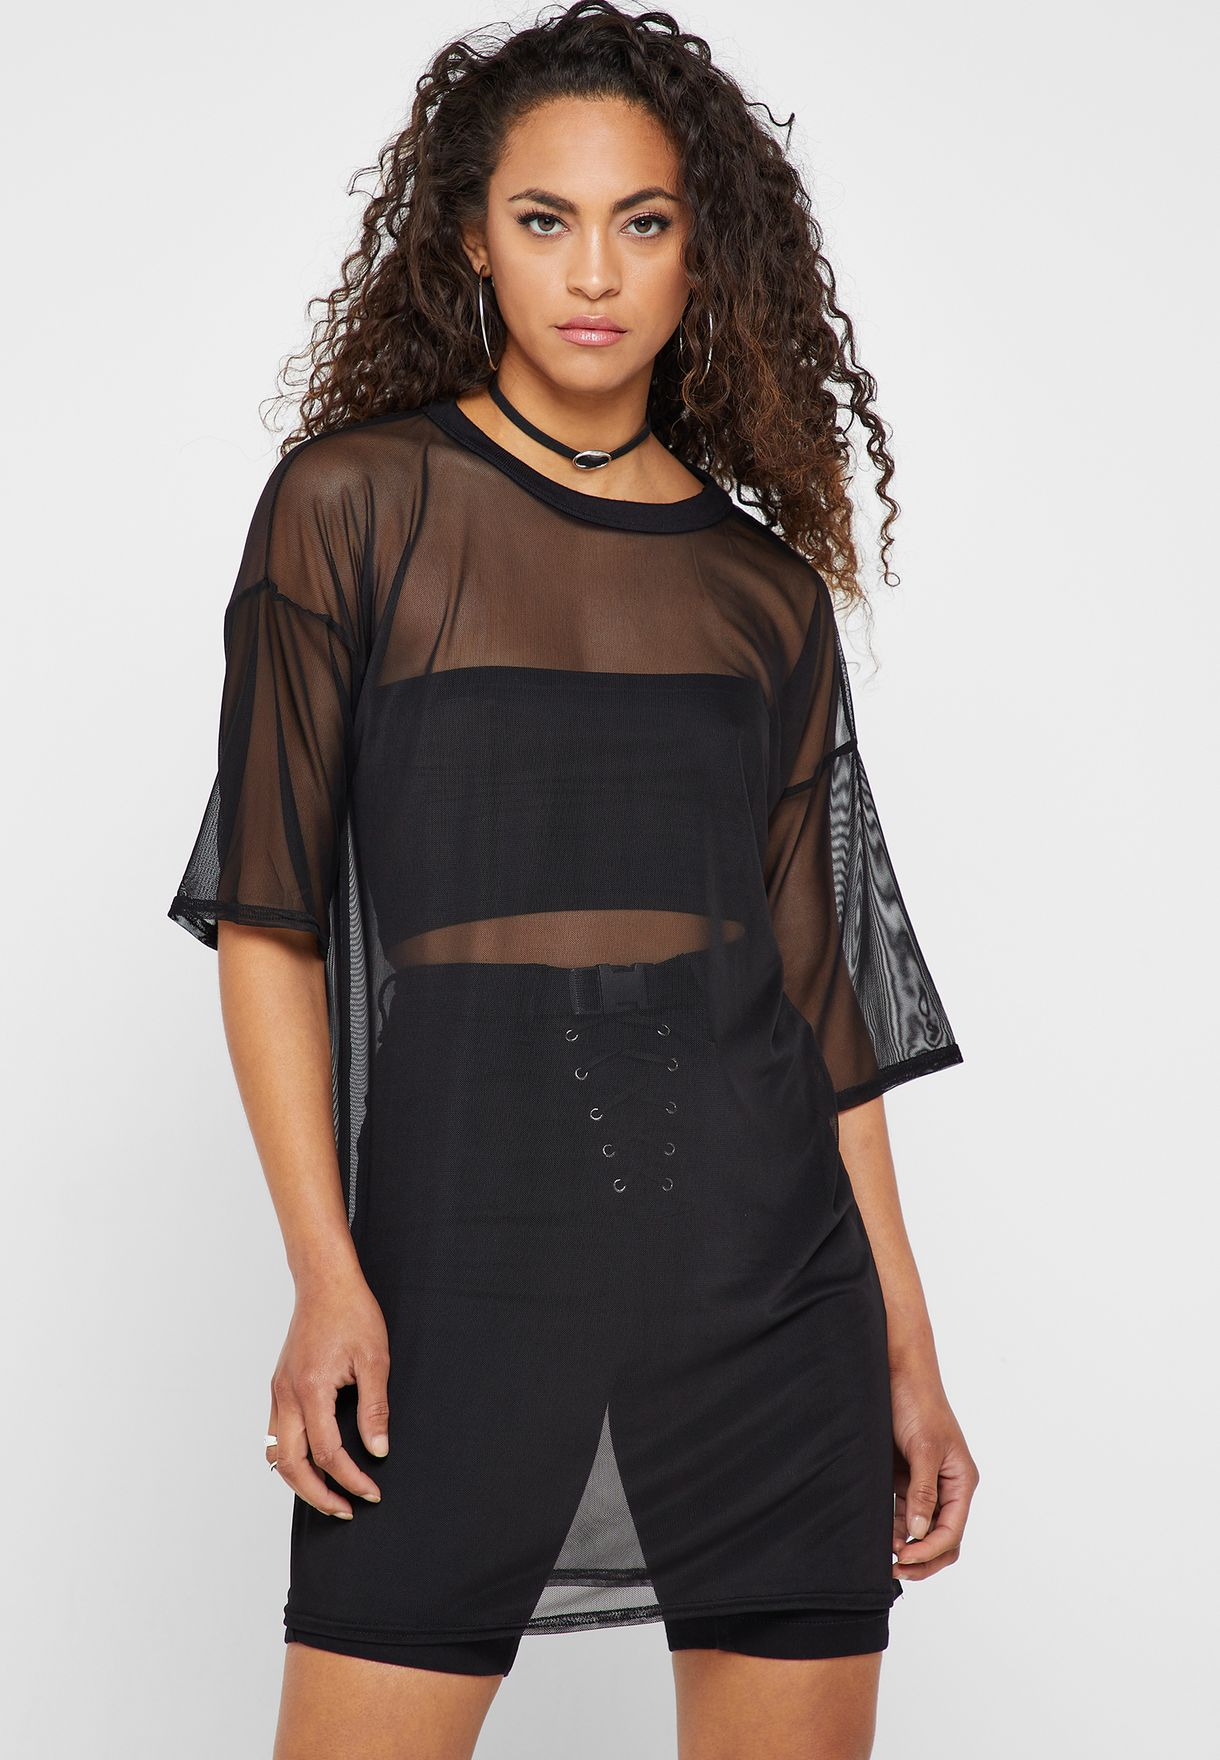 348971cb413 Shop Missguided black Oversize Mesh T-Shirt Dress DD917704 for Women ...